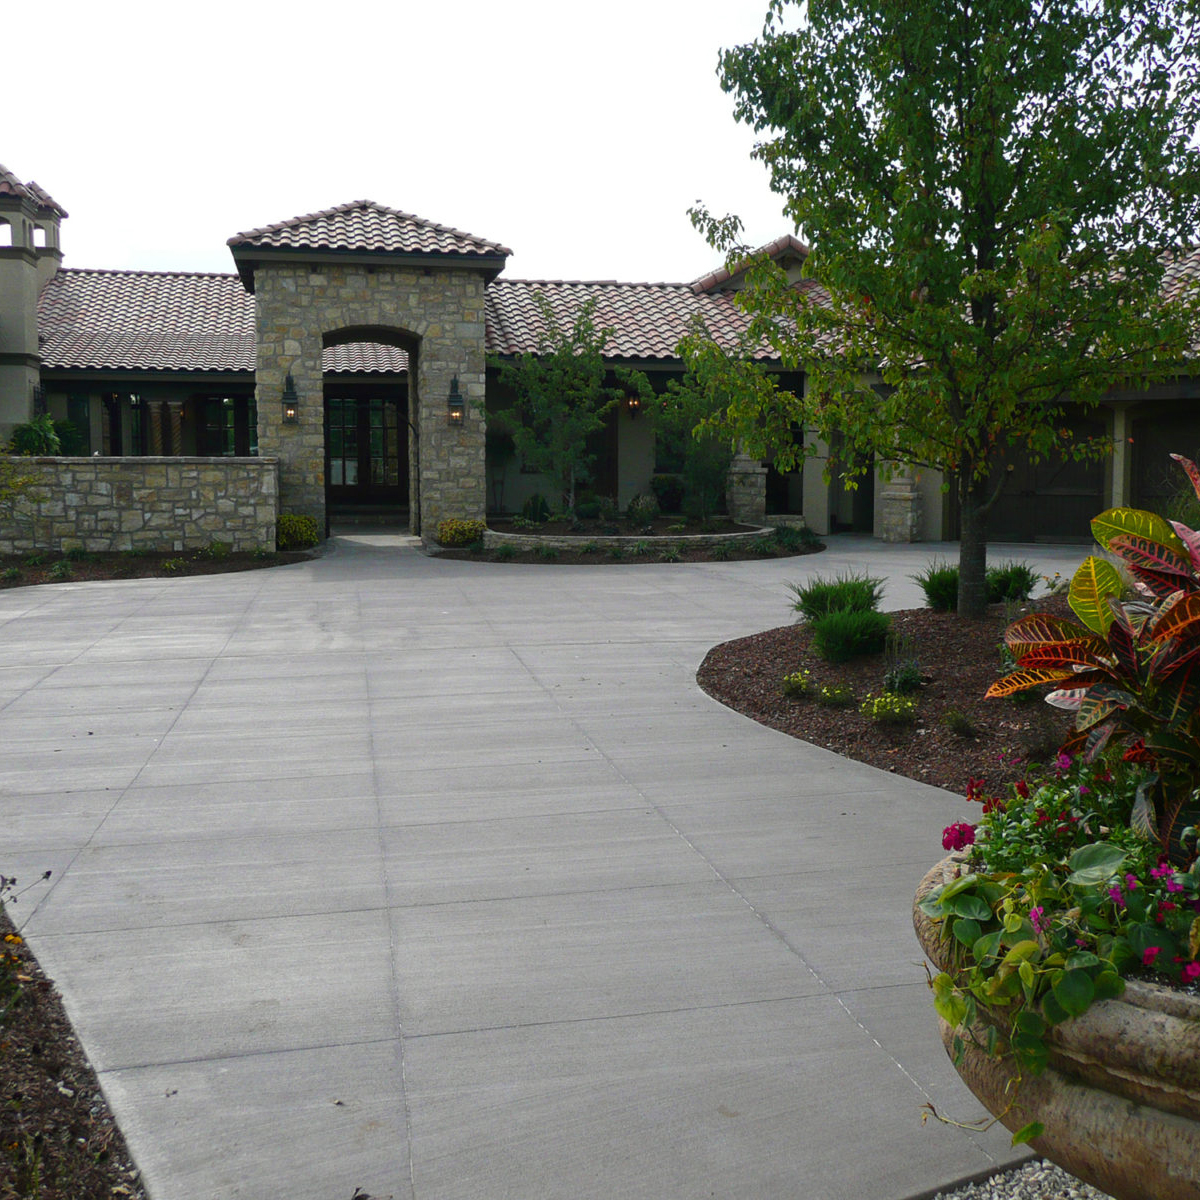 Custom concrete driveways for your home and other concrete services from Aesthetic Concrete Designs.